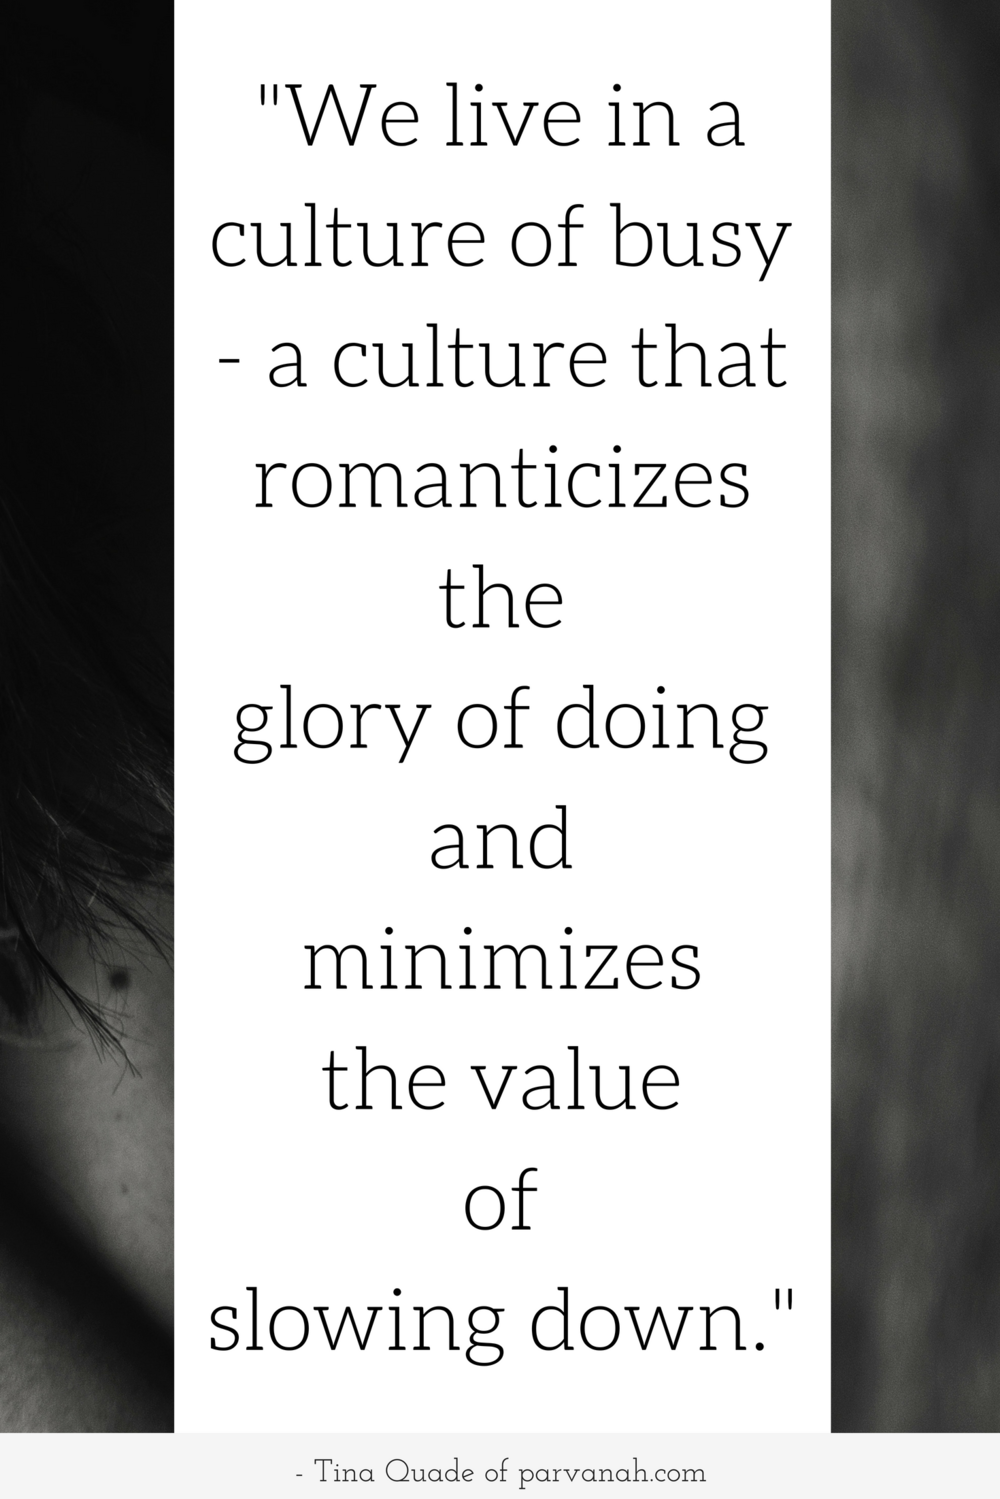 """We live in a culture of busy - a culture that romanticizes the glory of doing and minimizes the value of slowing down."" ~ Tina Quade"